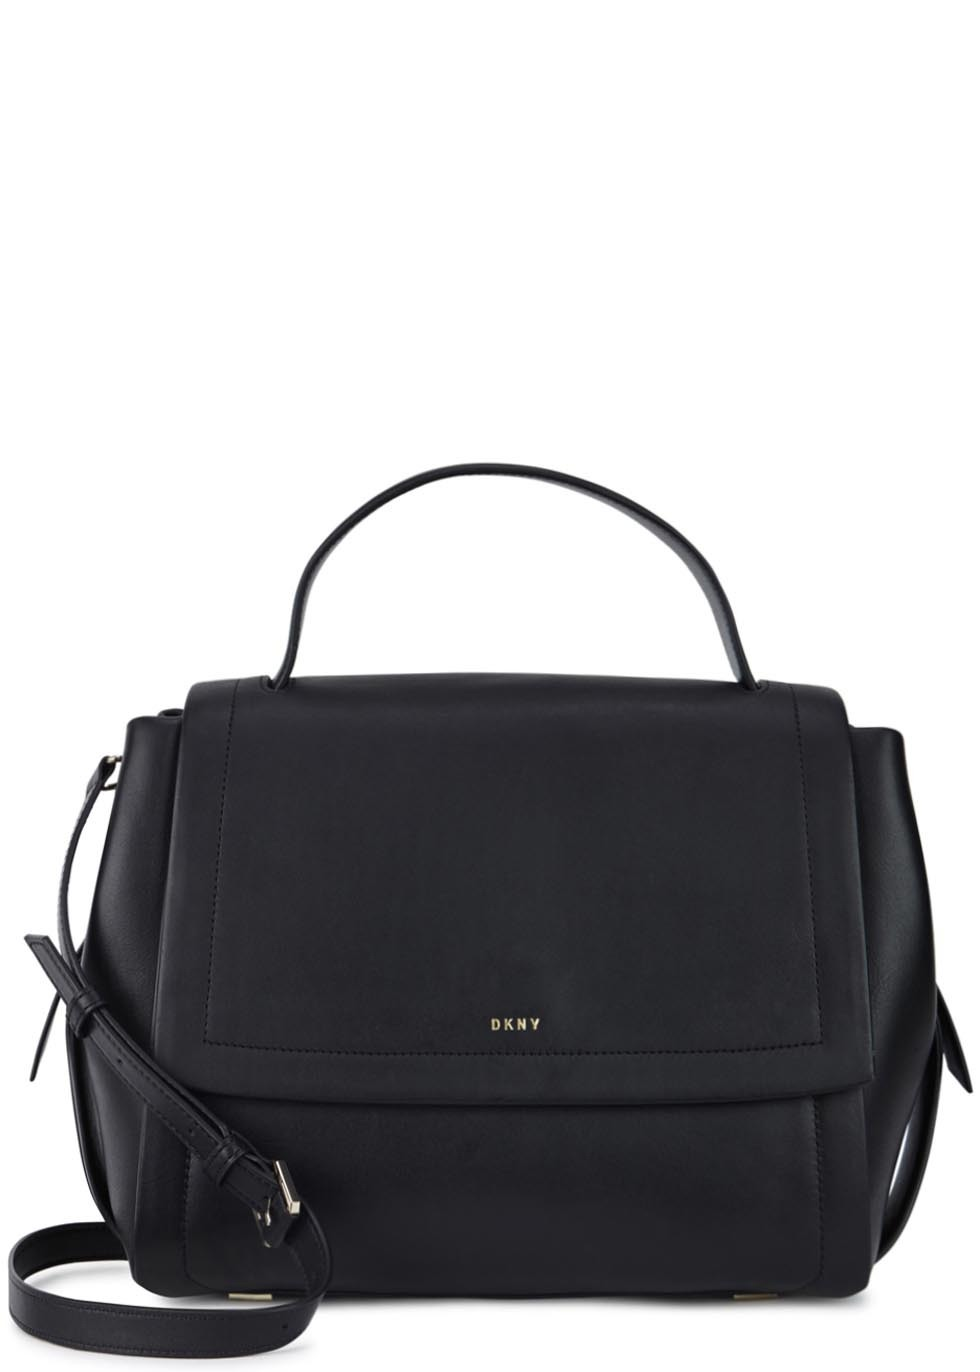 Greenwich Black Leather Shoulder Bag - predominant colour: black; occasions: casual, creative work; type of pattern: standard; style: satchel; length: across body/long; size: standard; material: leather; pattern: plain; finish: plain; season: s/s 2016